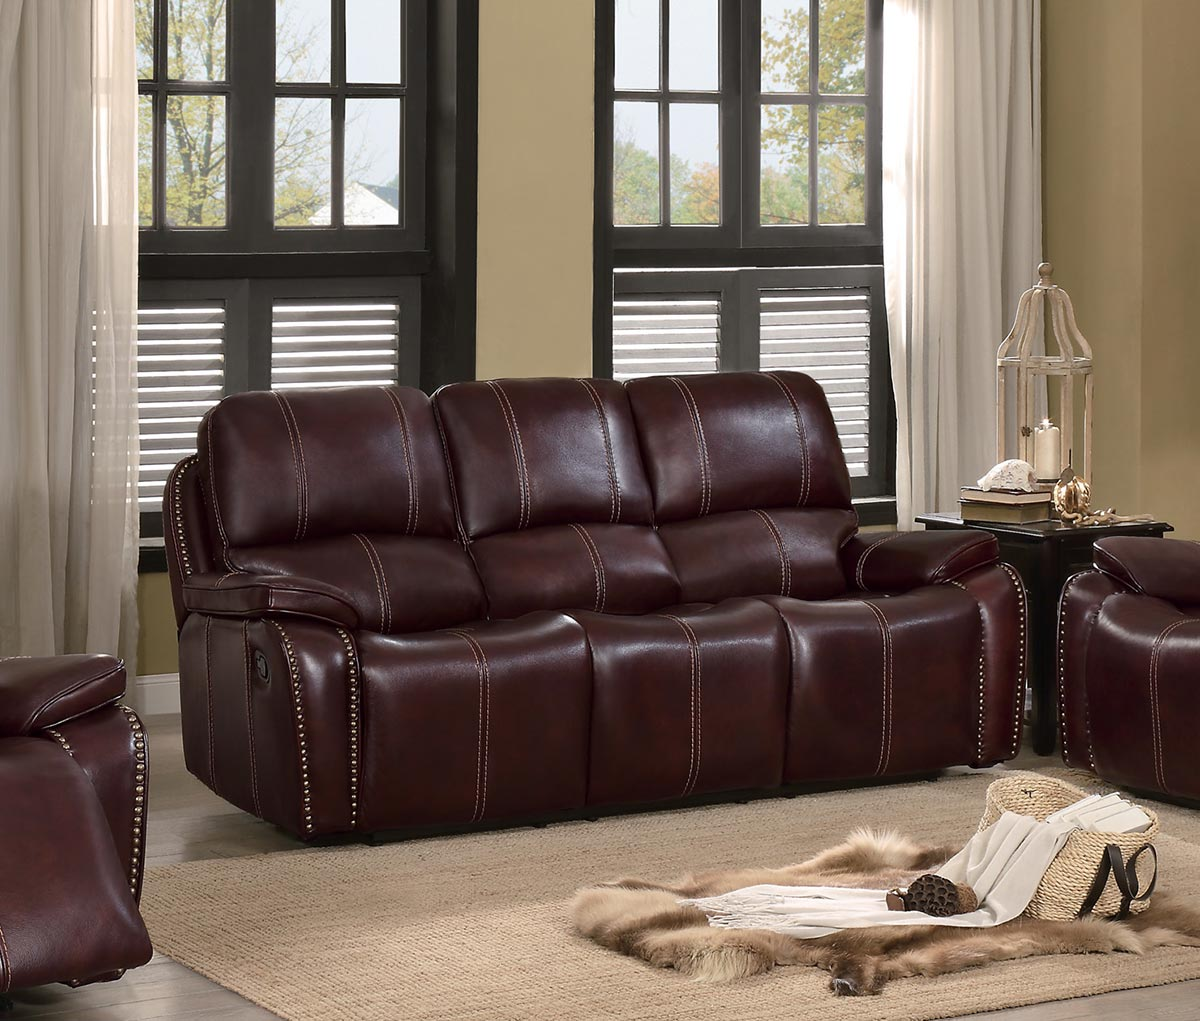 Homelegance Haughton Double Reclining Sofa - Brown Top Grain Leather Match